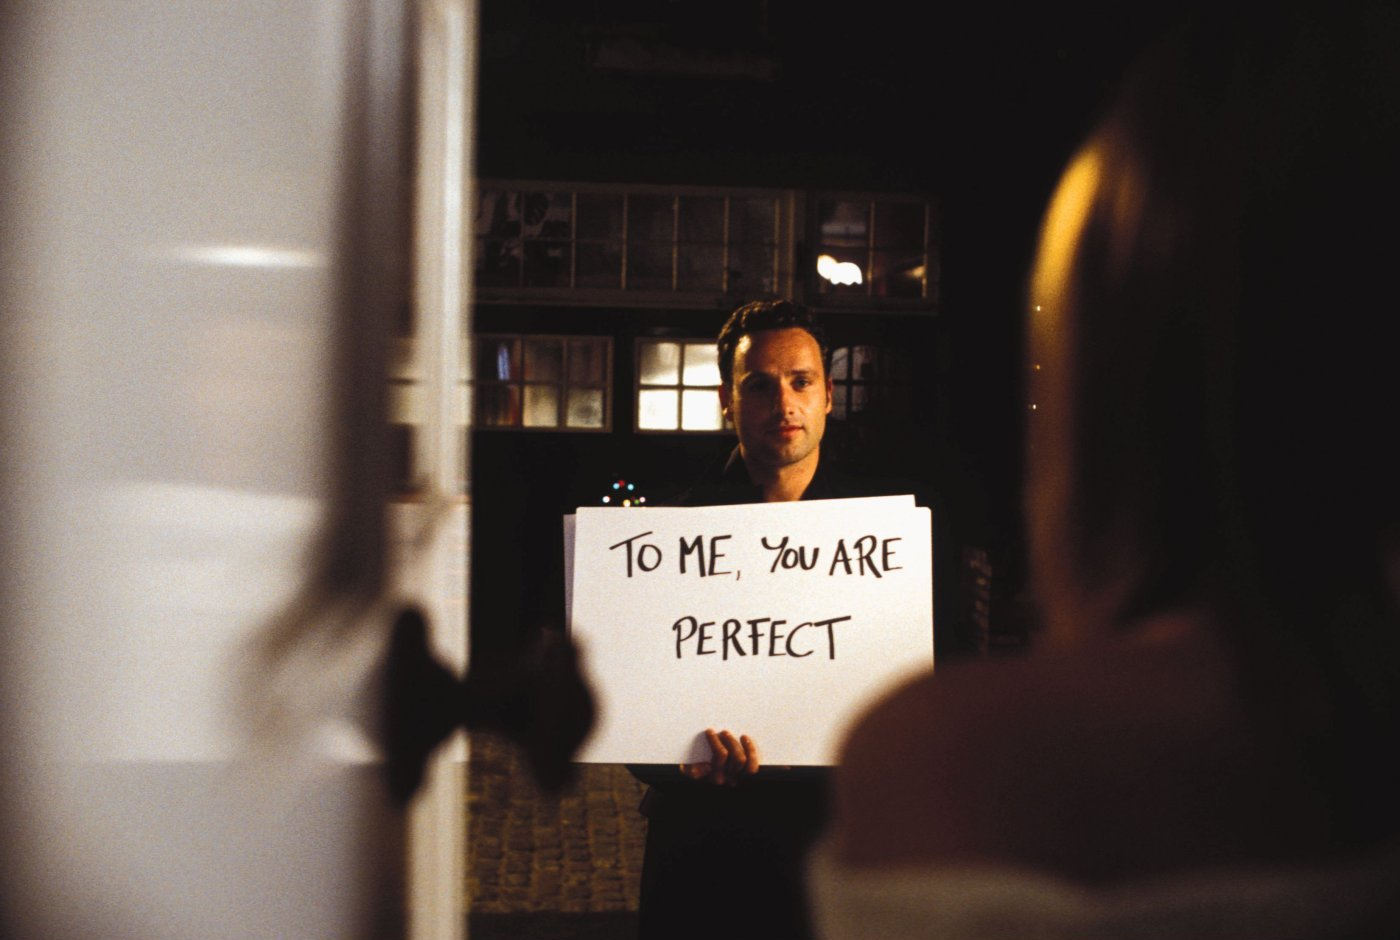 You are perfect - Love actually